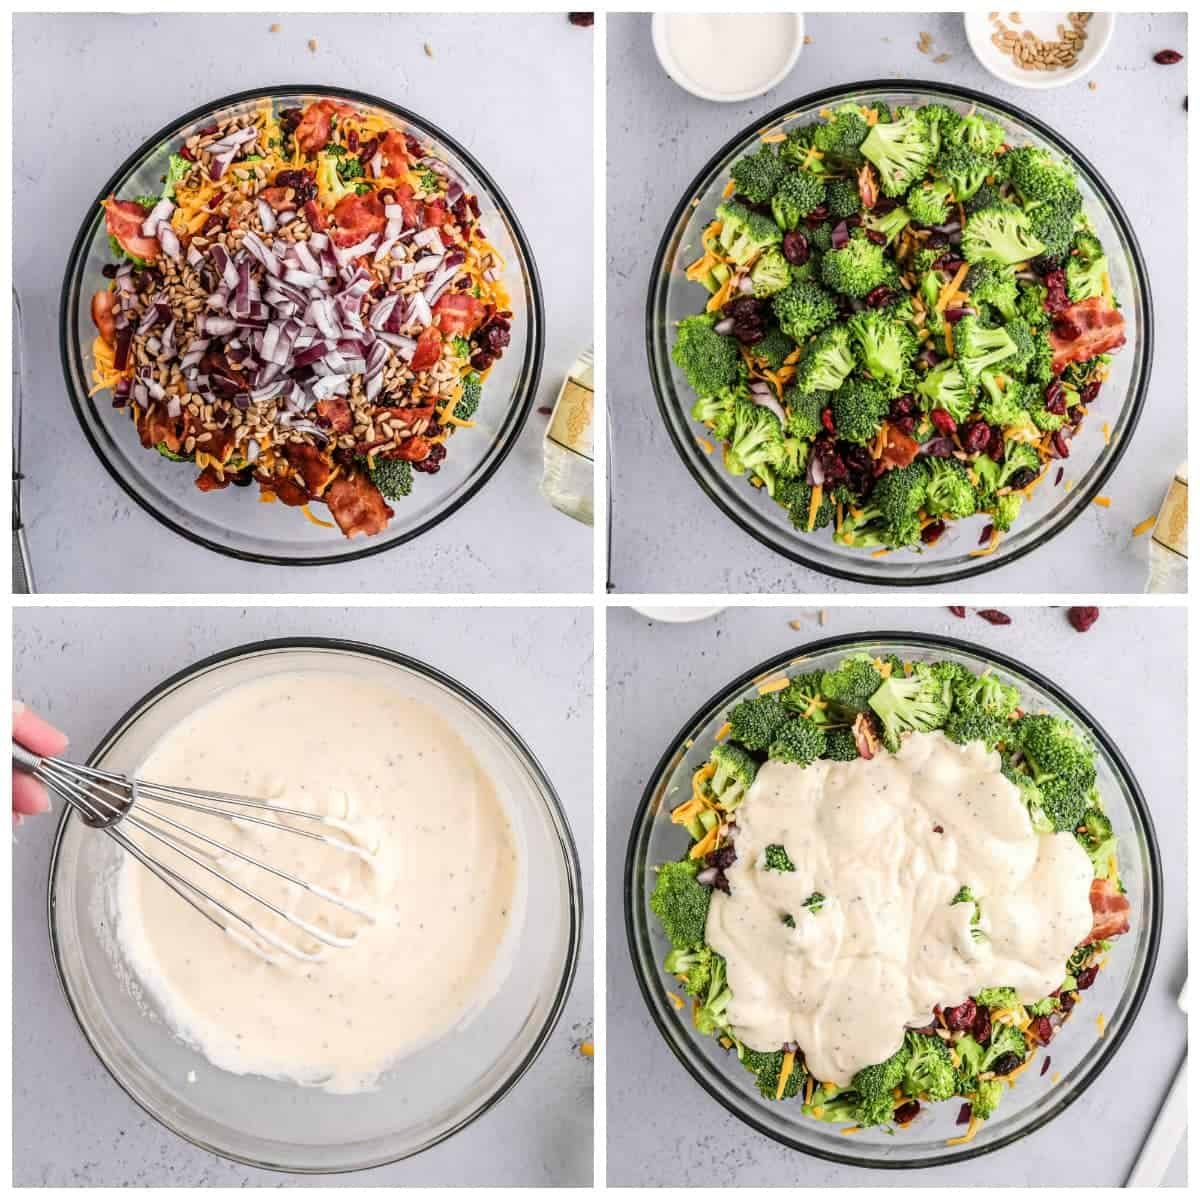 Four process photos. First one, all the dry ingredients in a large clear bowl. Second one, all the dry ingredients mixed together. Third one the dressing being whisked together in a clear bowl. Fourth one, dressing poured on top of the vegetables ina large clear bowl.